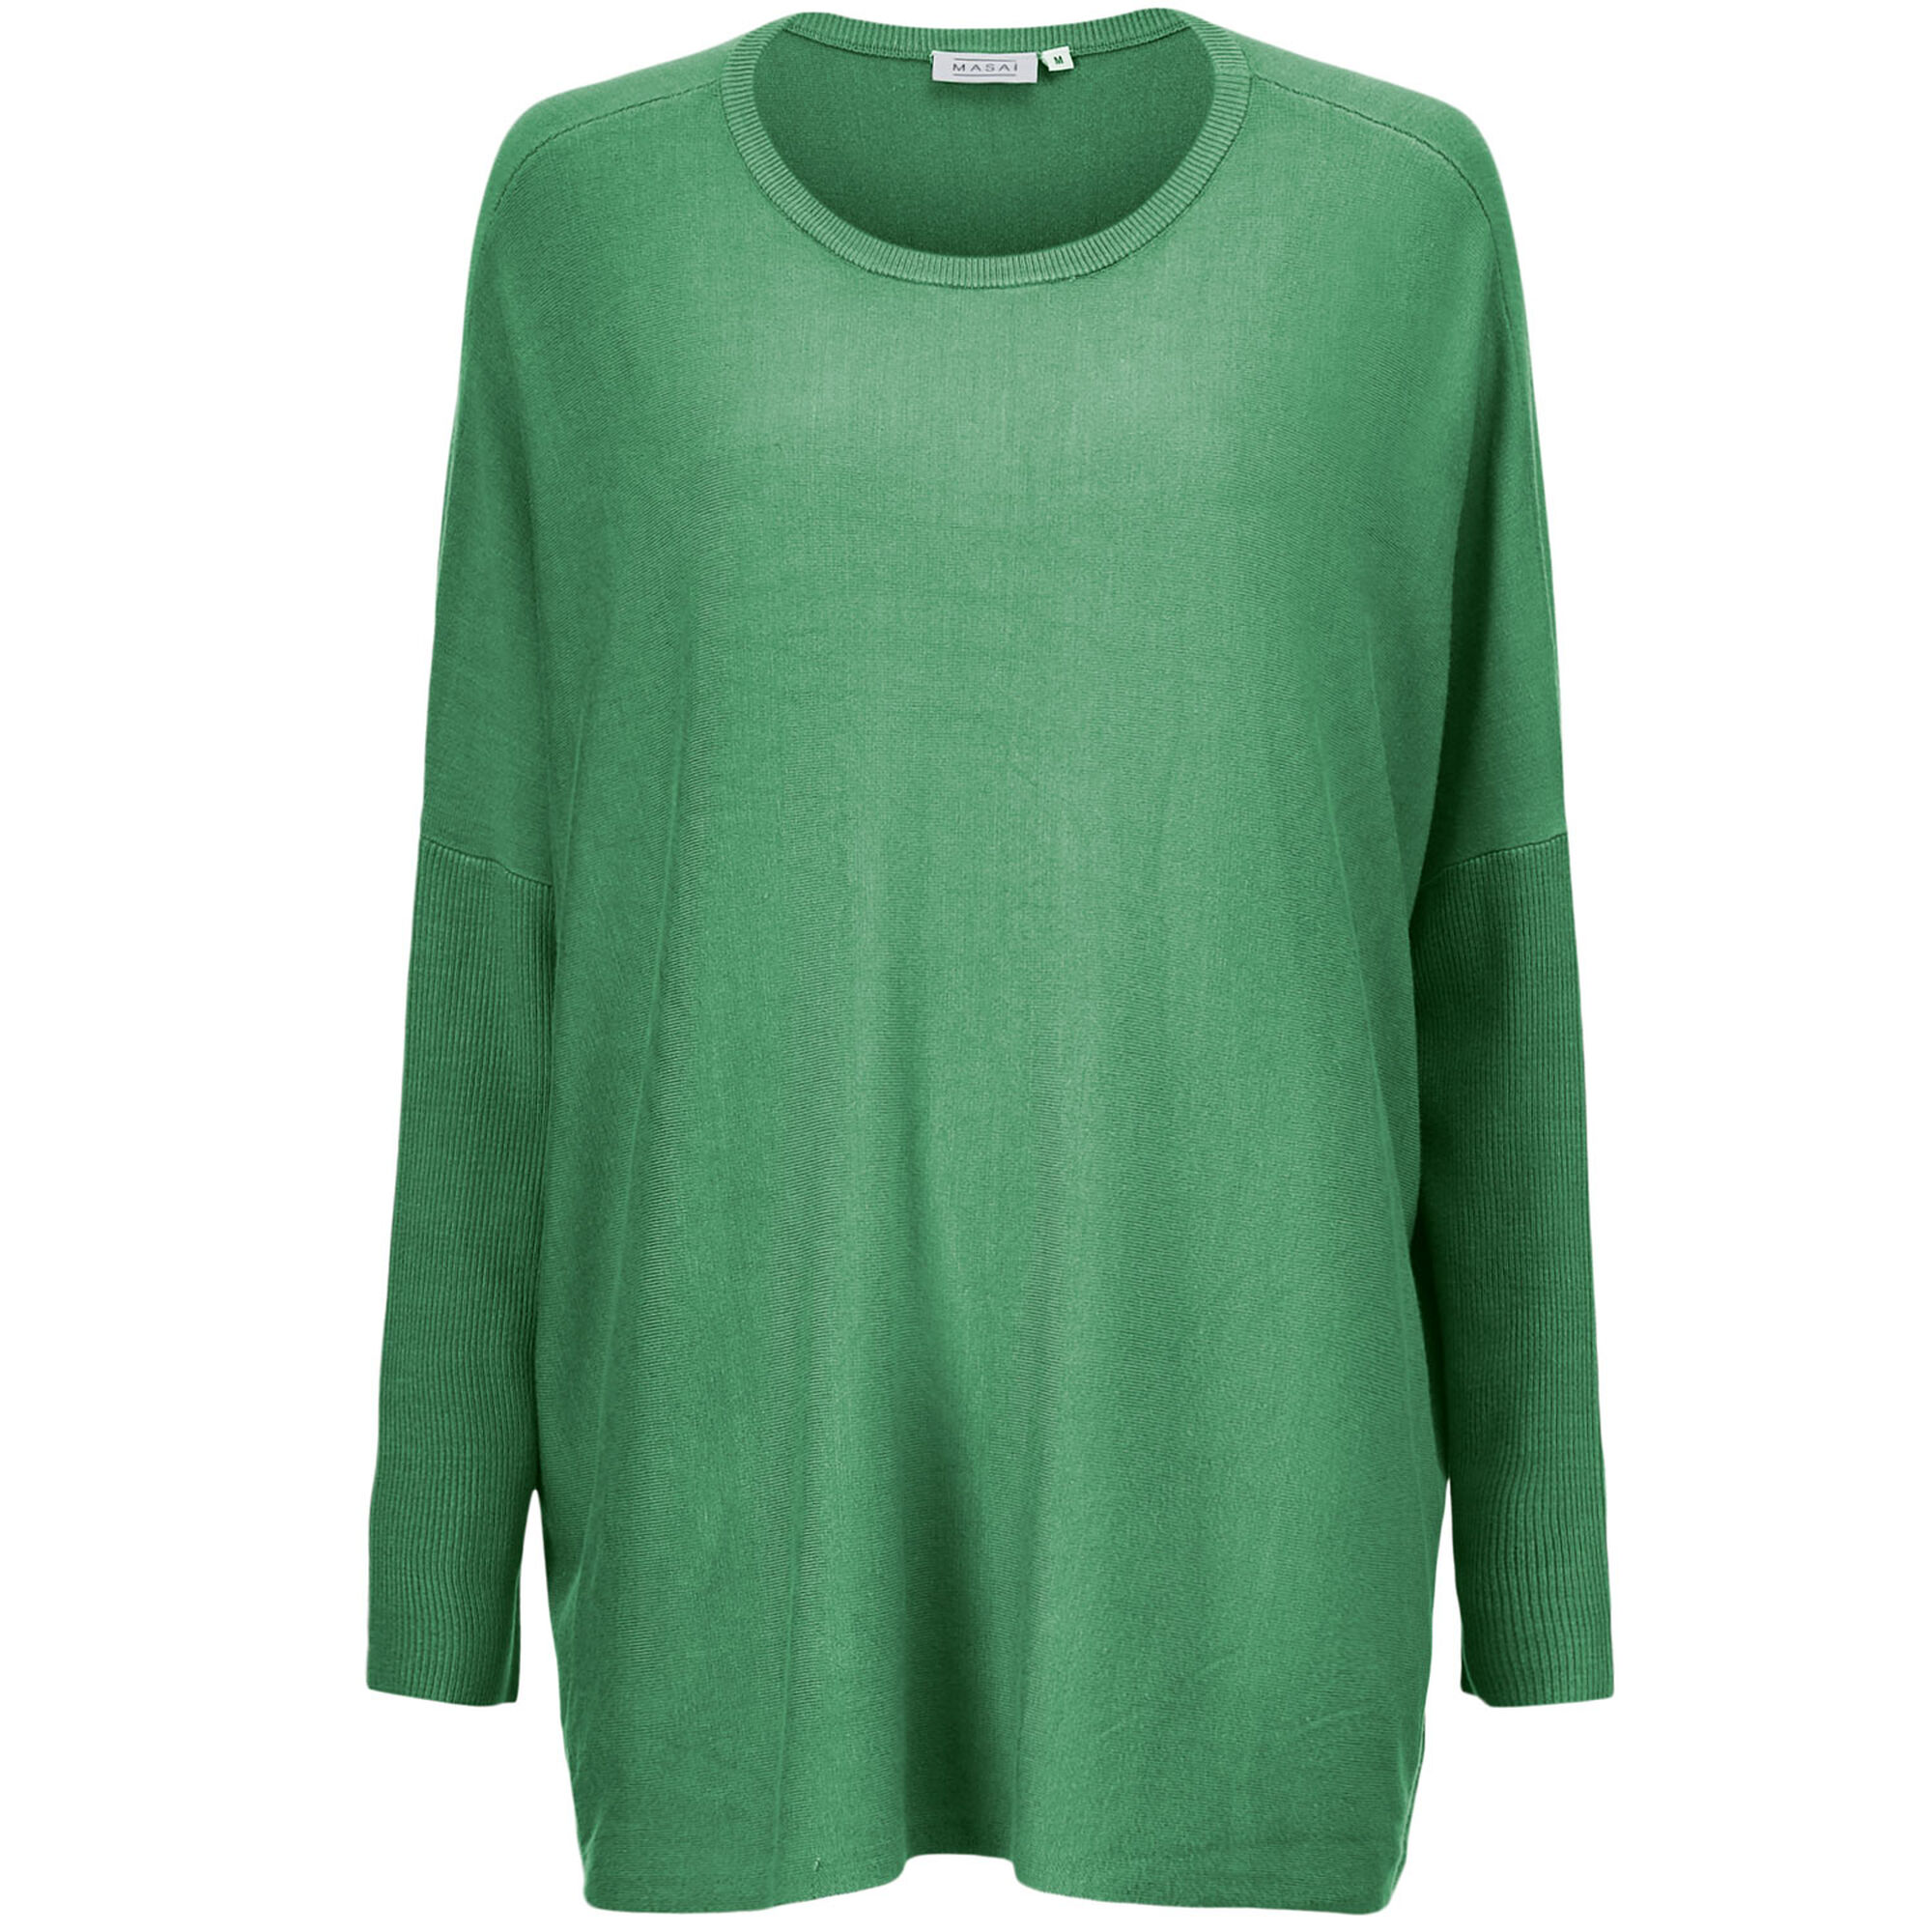 FANASI TOP, Bottle Green, hi-res